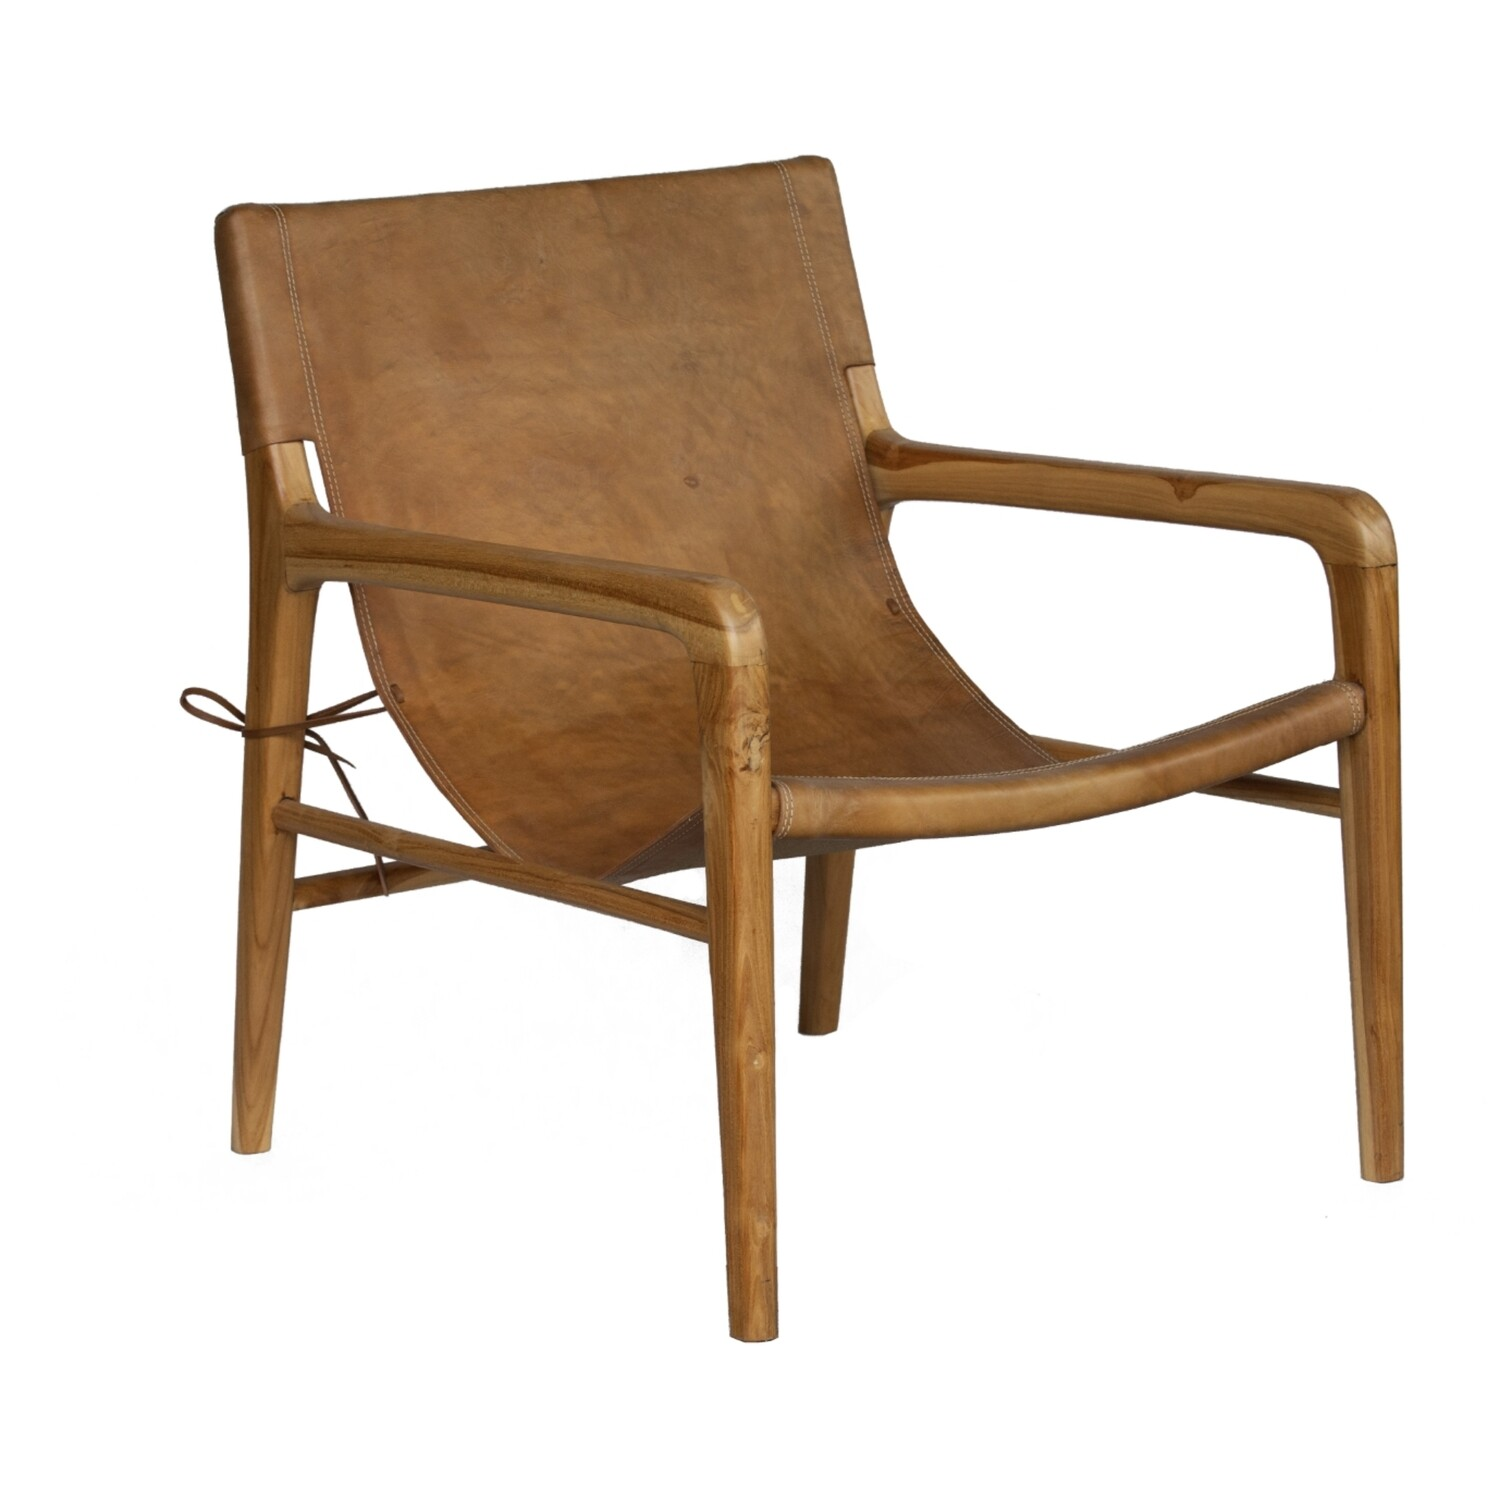 Leather Occasional Chair 1 (Tan)